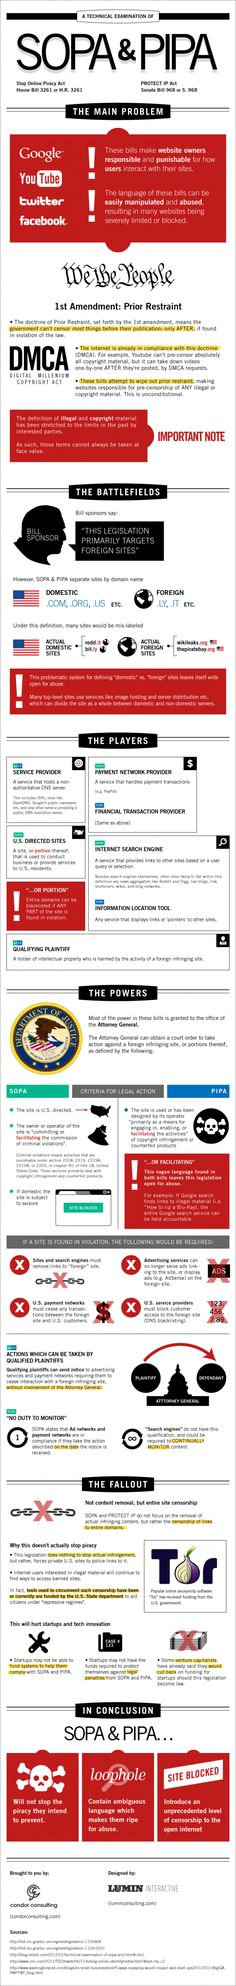 A very good explanation as to why SOPA and PIPA are not effective and not constitutional...     http://dailyinfographic.com/sopa-pipa-explained